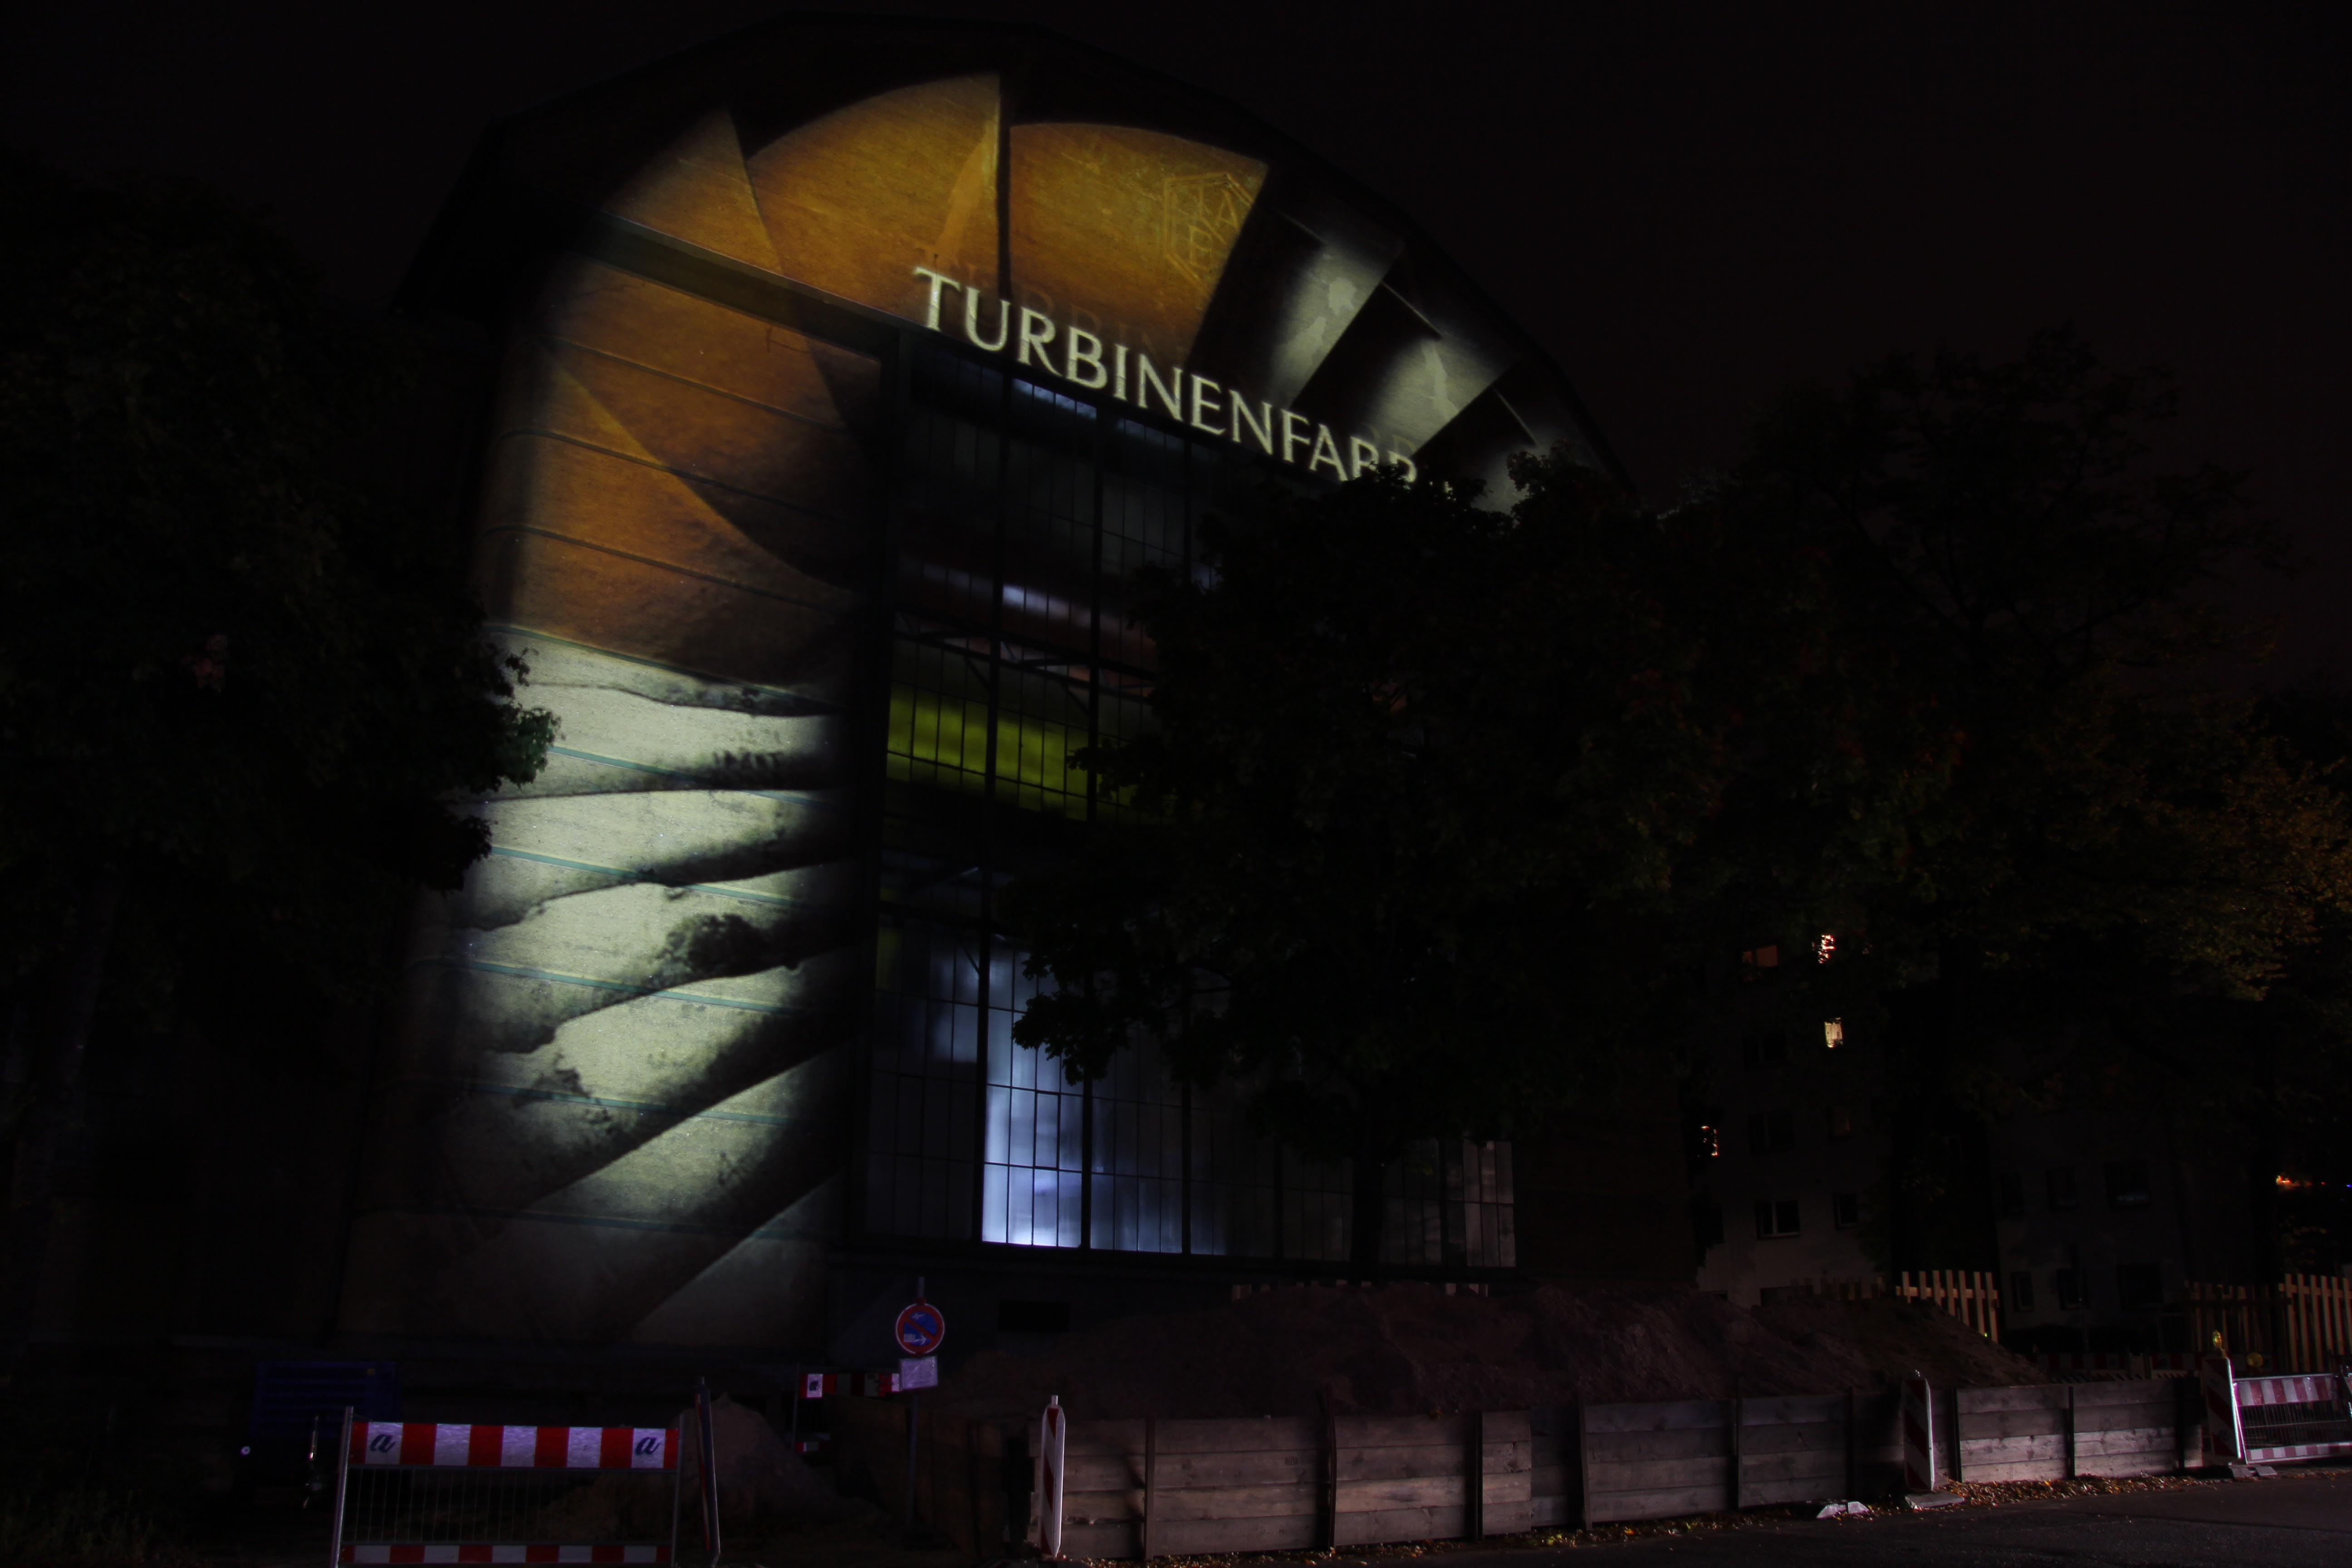 A light projection on the Siemens AG Turbinenfabrik during the Festival of Lights in Berlin